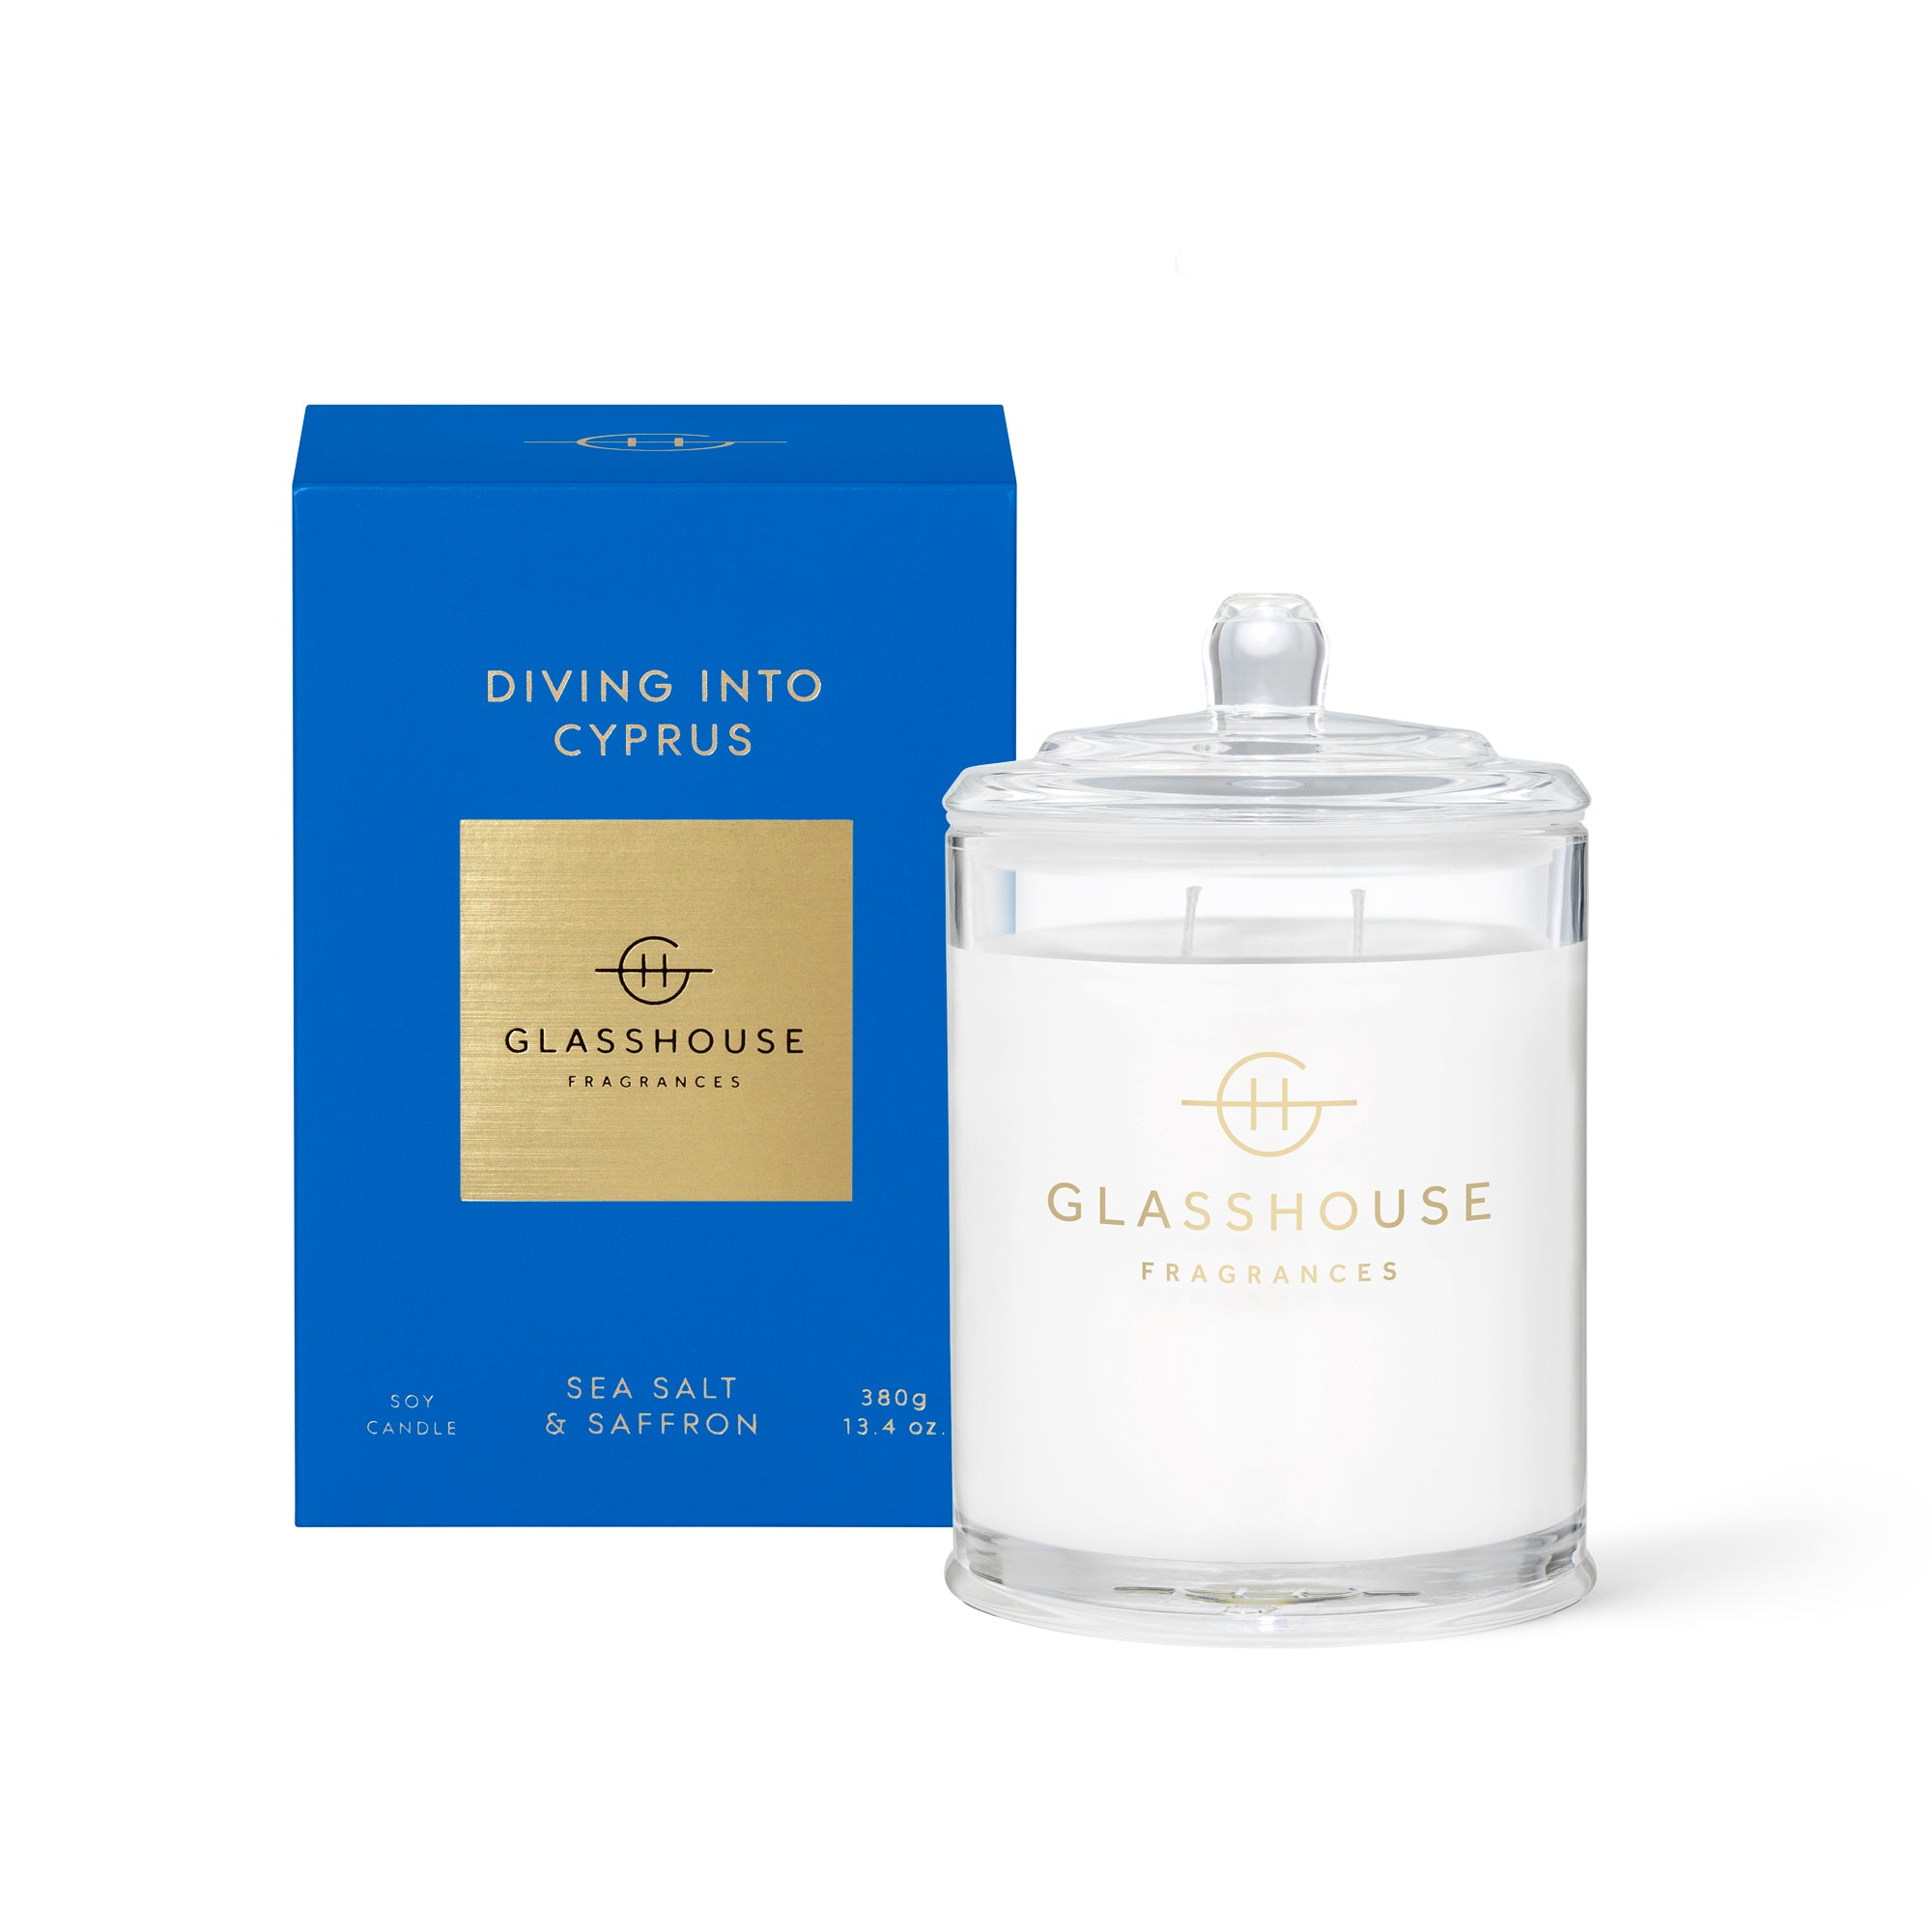 GLASSHOUSE -  DIVING INTO CYPRUS Candle 380g